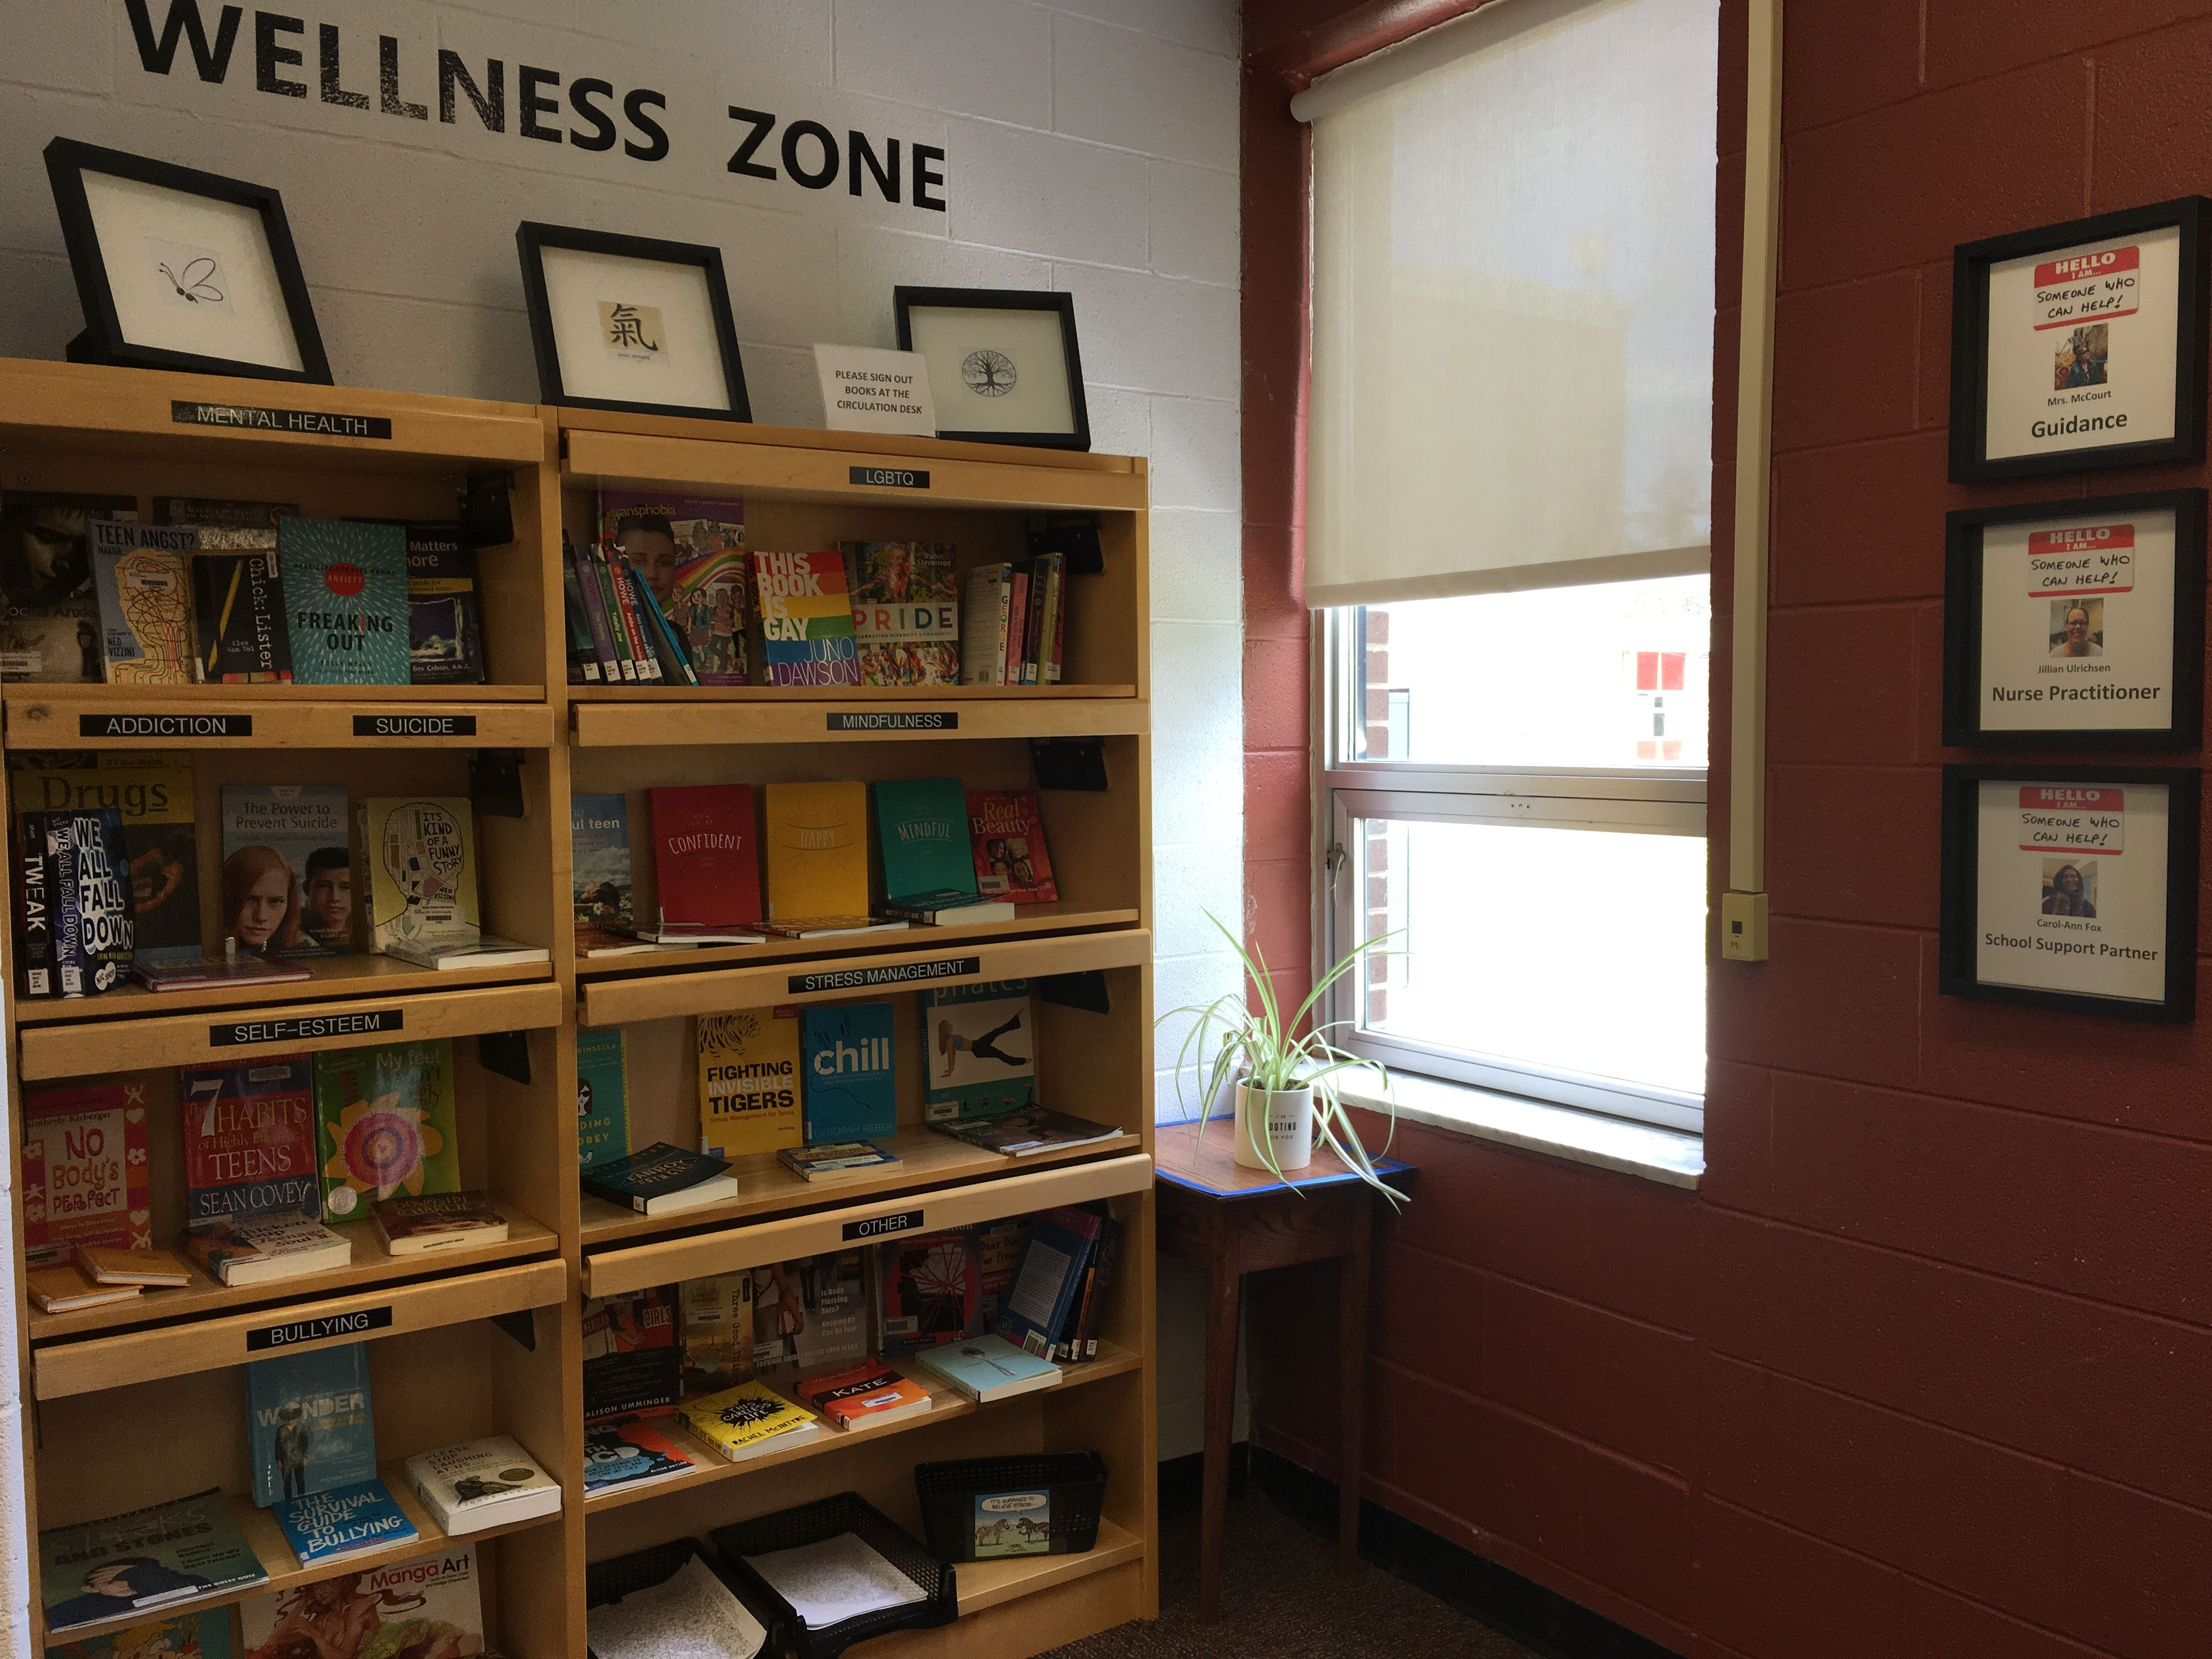 High School Wellness Zone With Resources For Students To